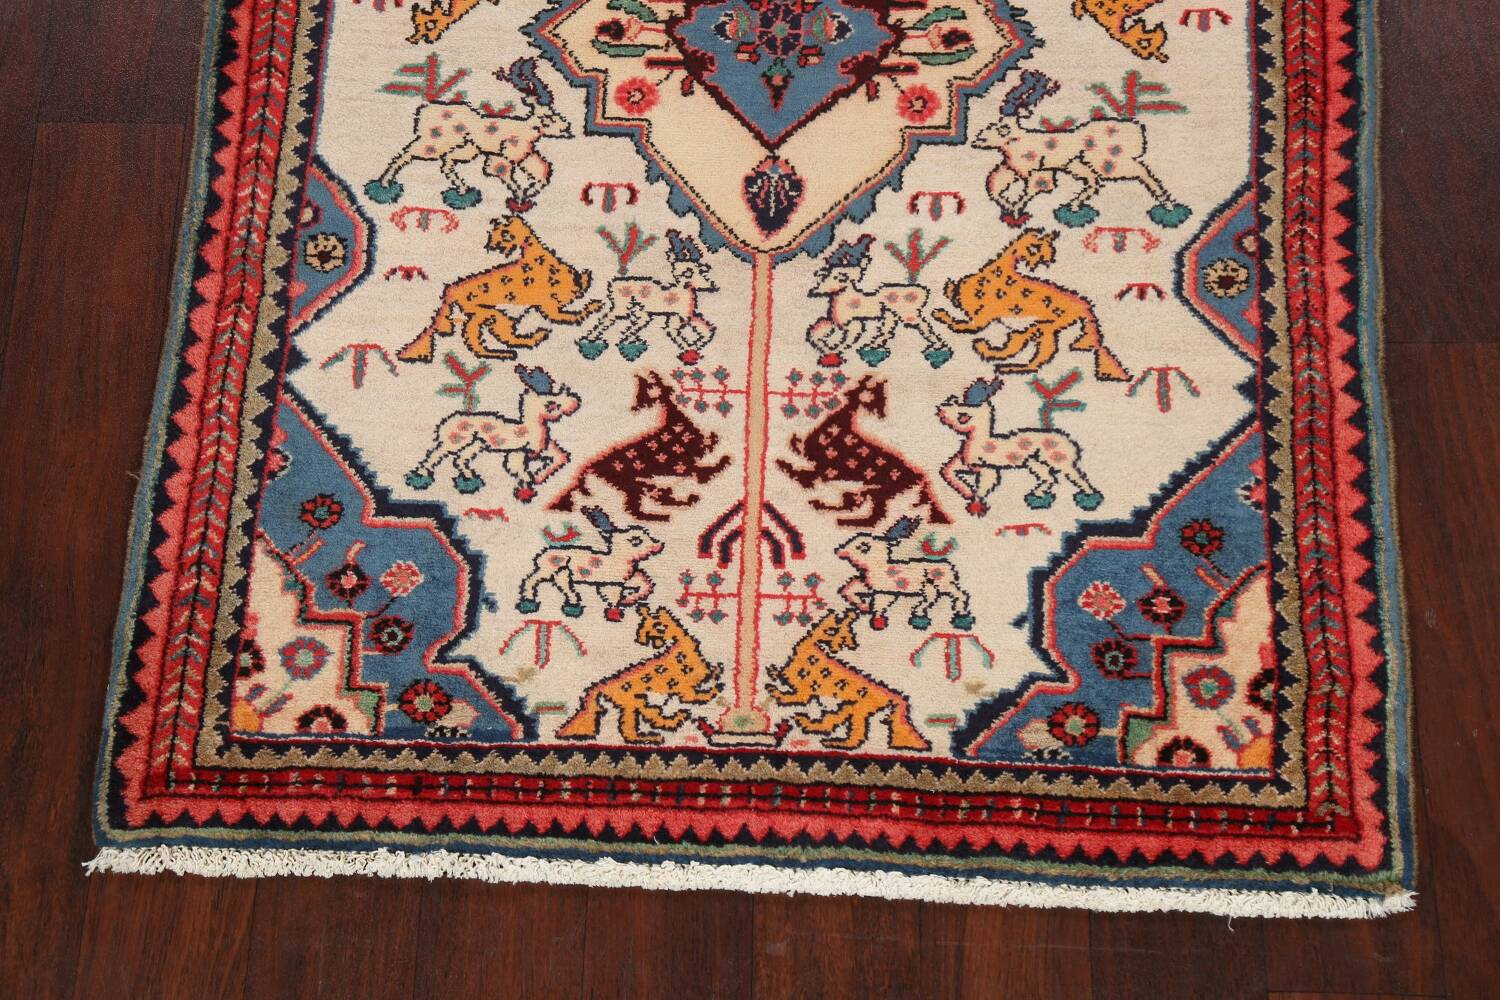 Animal Pictorial Vegetable Dye Senneh Persian Area Rug 3x5 image 8